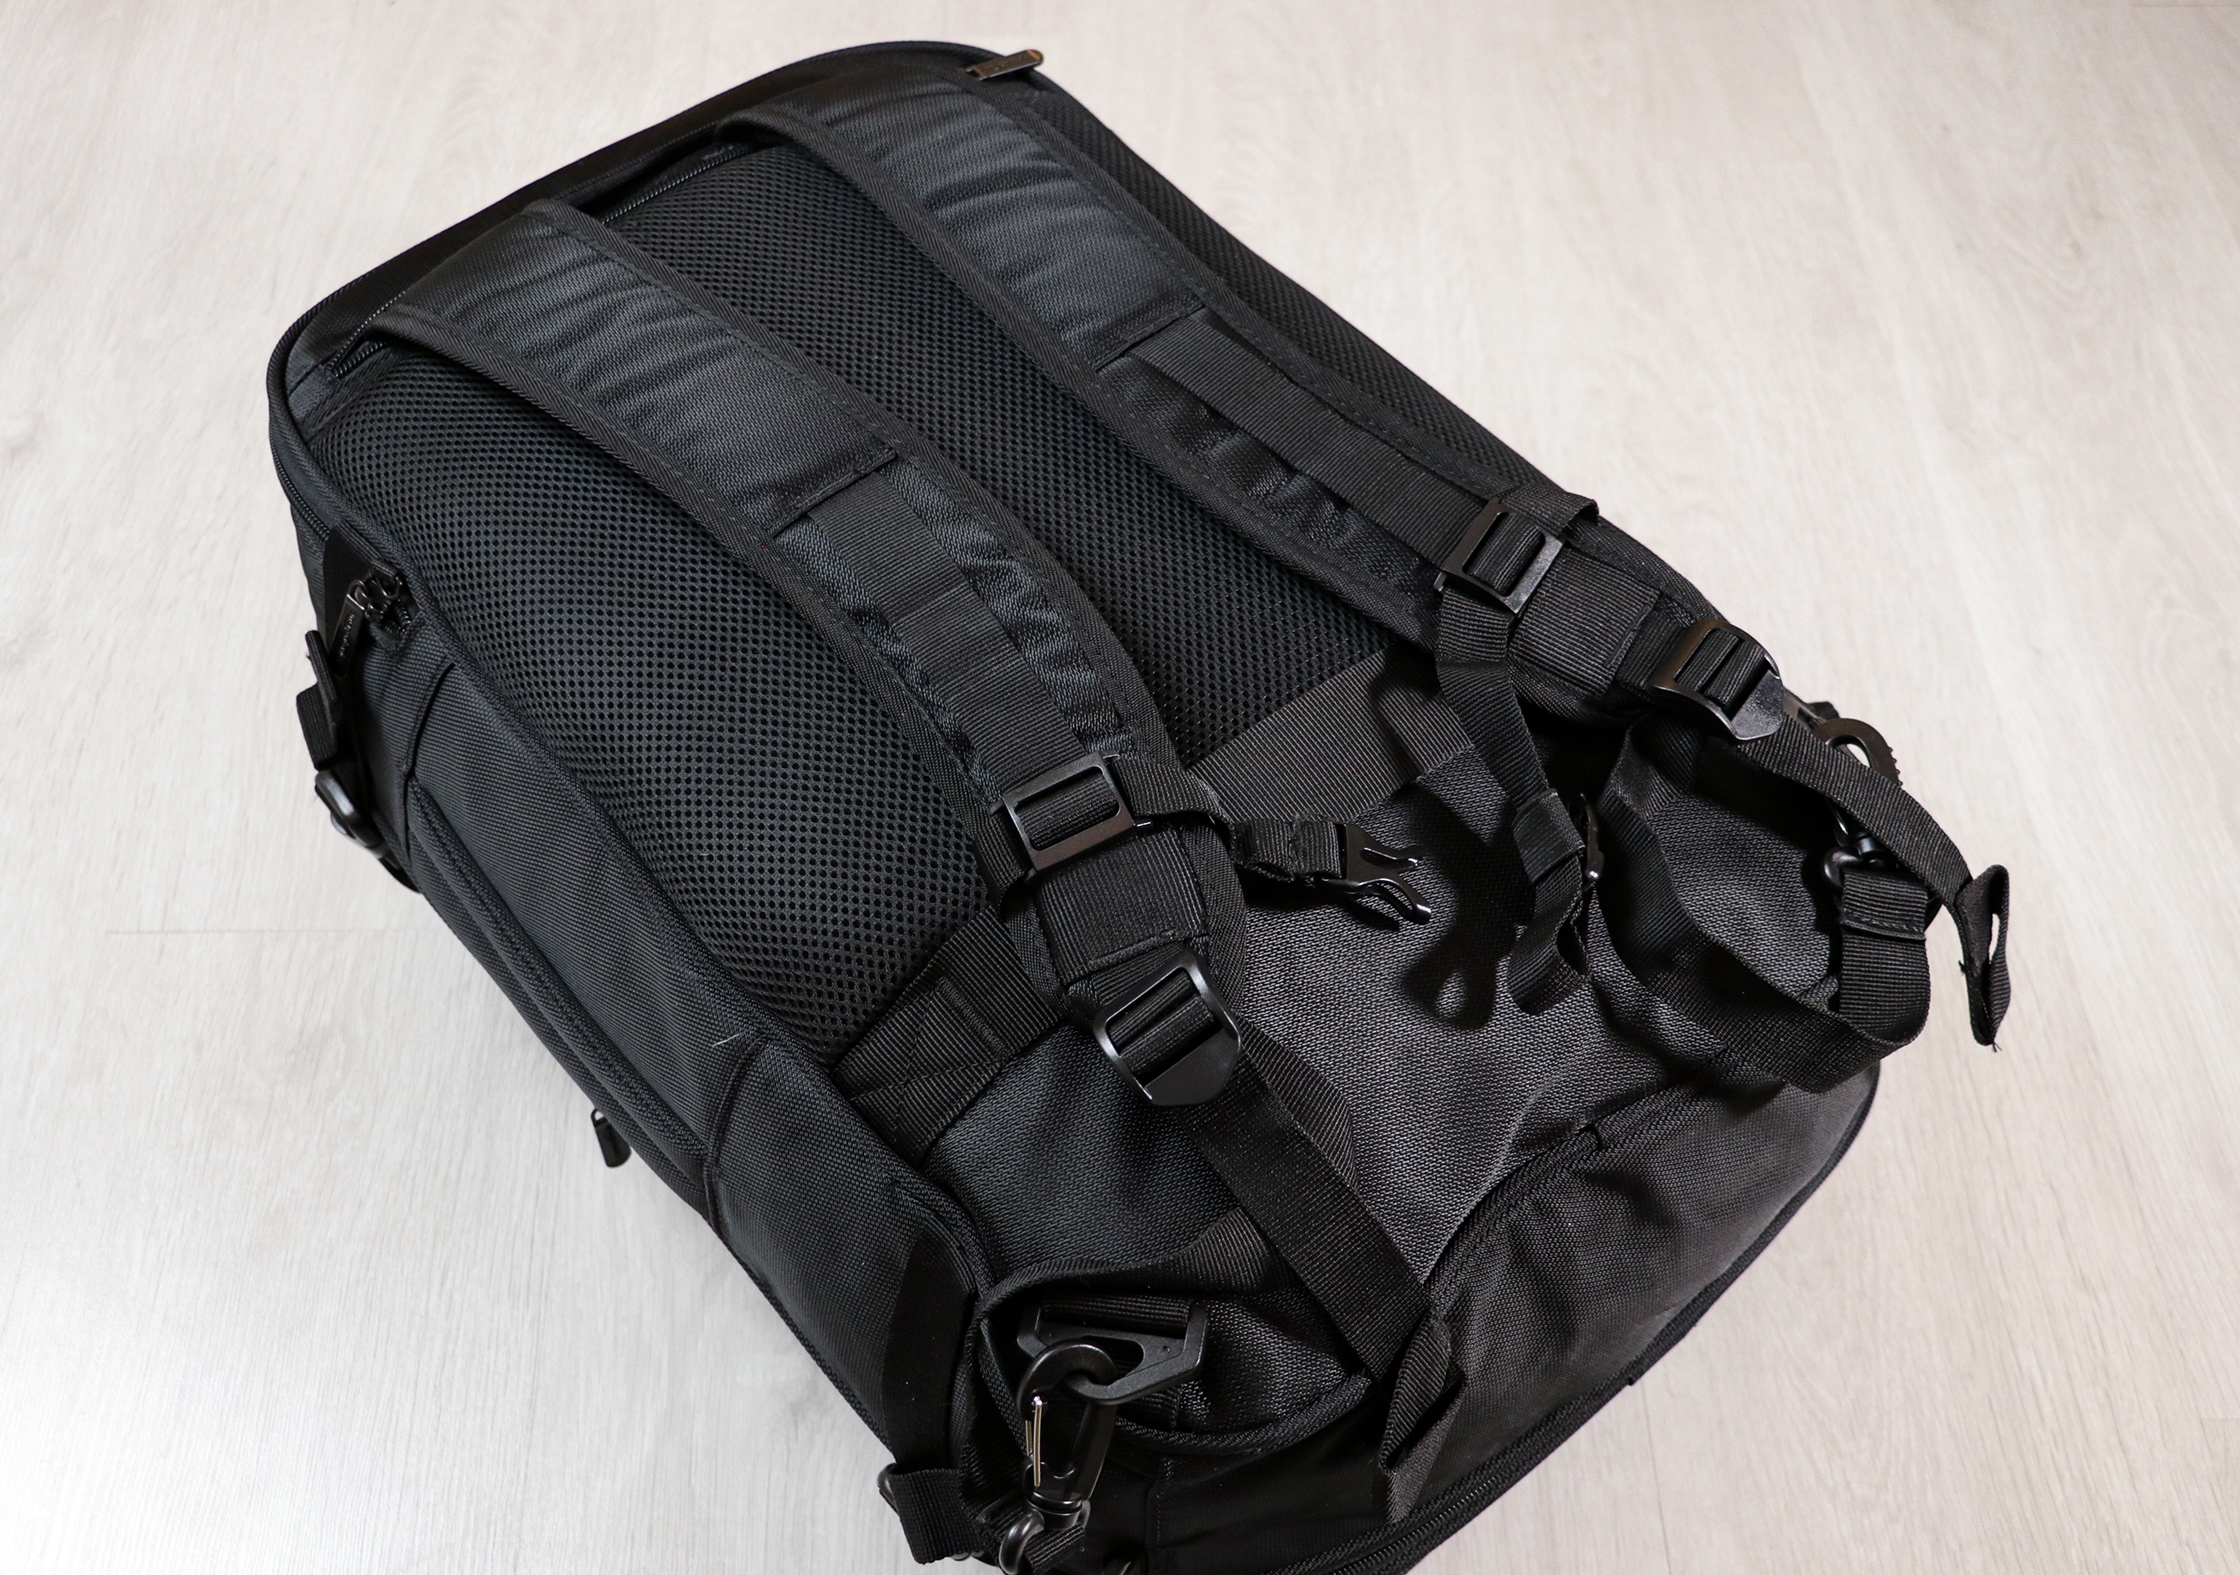 AmazonBasics Carry-On Travel Backpack Harness System